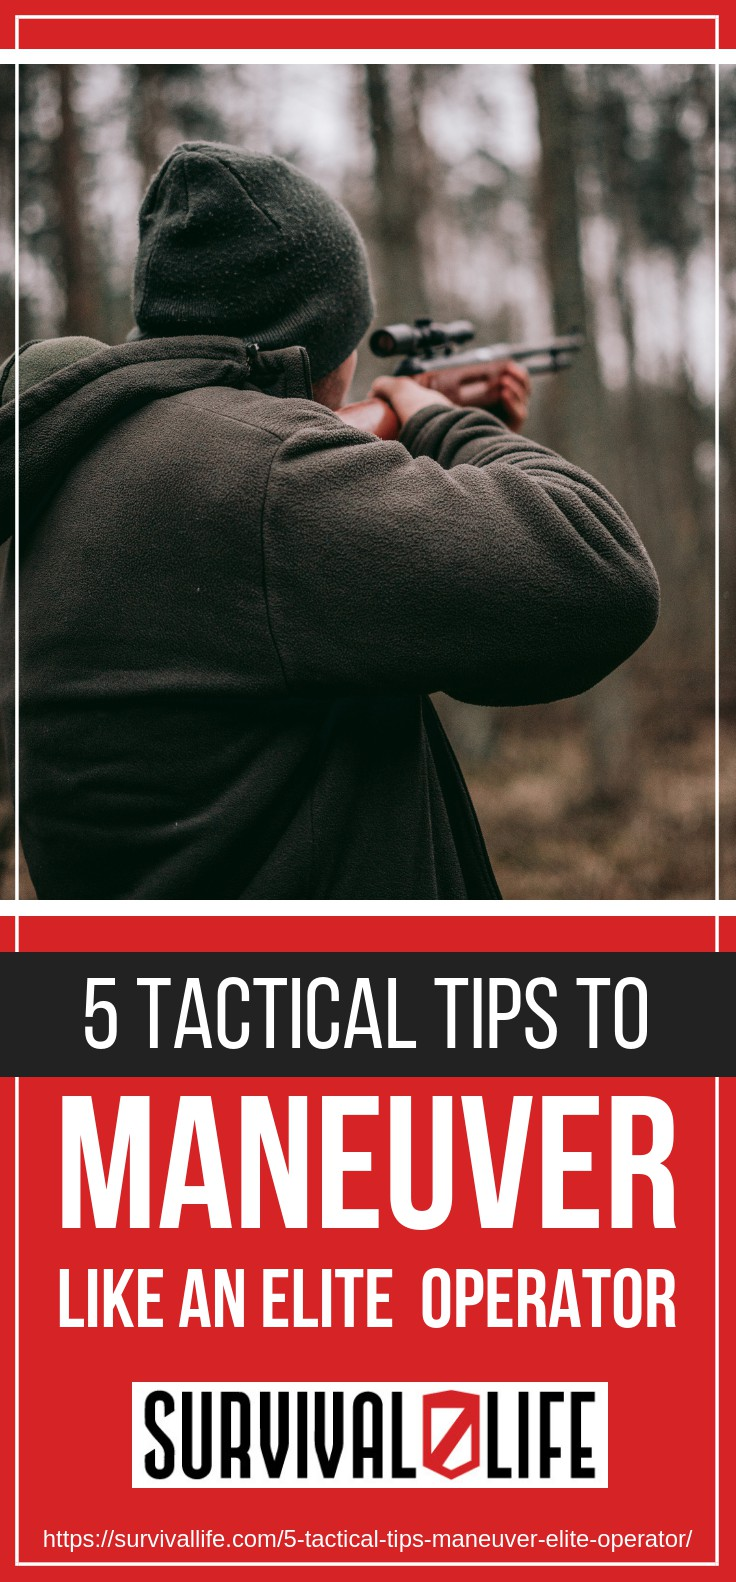 5 Tactical Tips To Maneuver Like An Elite Operator https://survivallife.com/5-tactical-tips-maneuver-elite-operator/